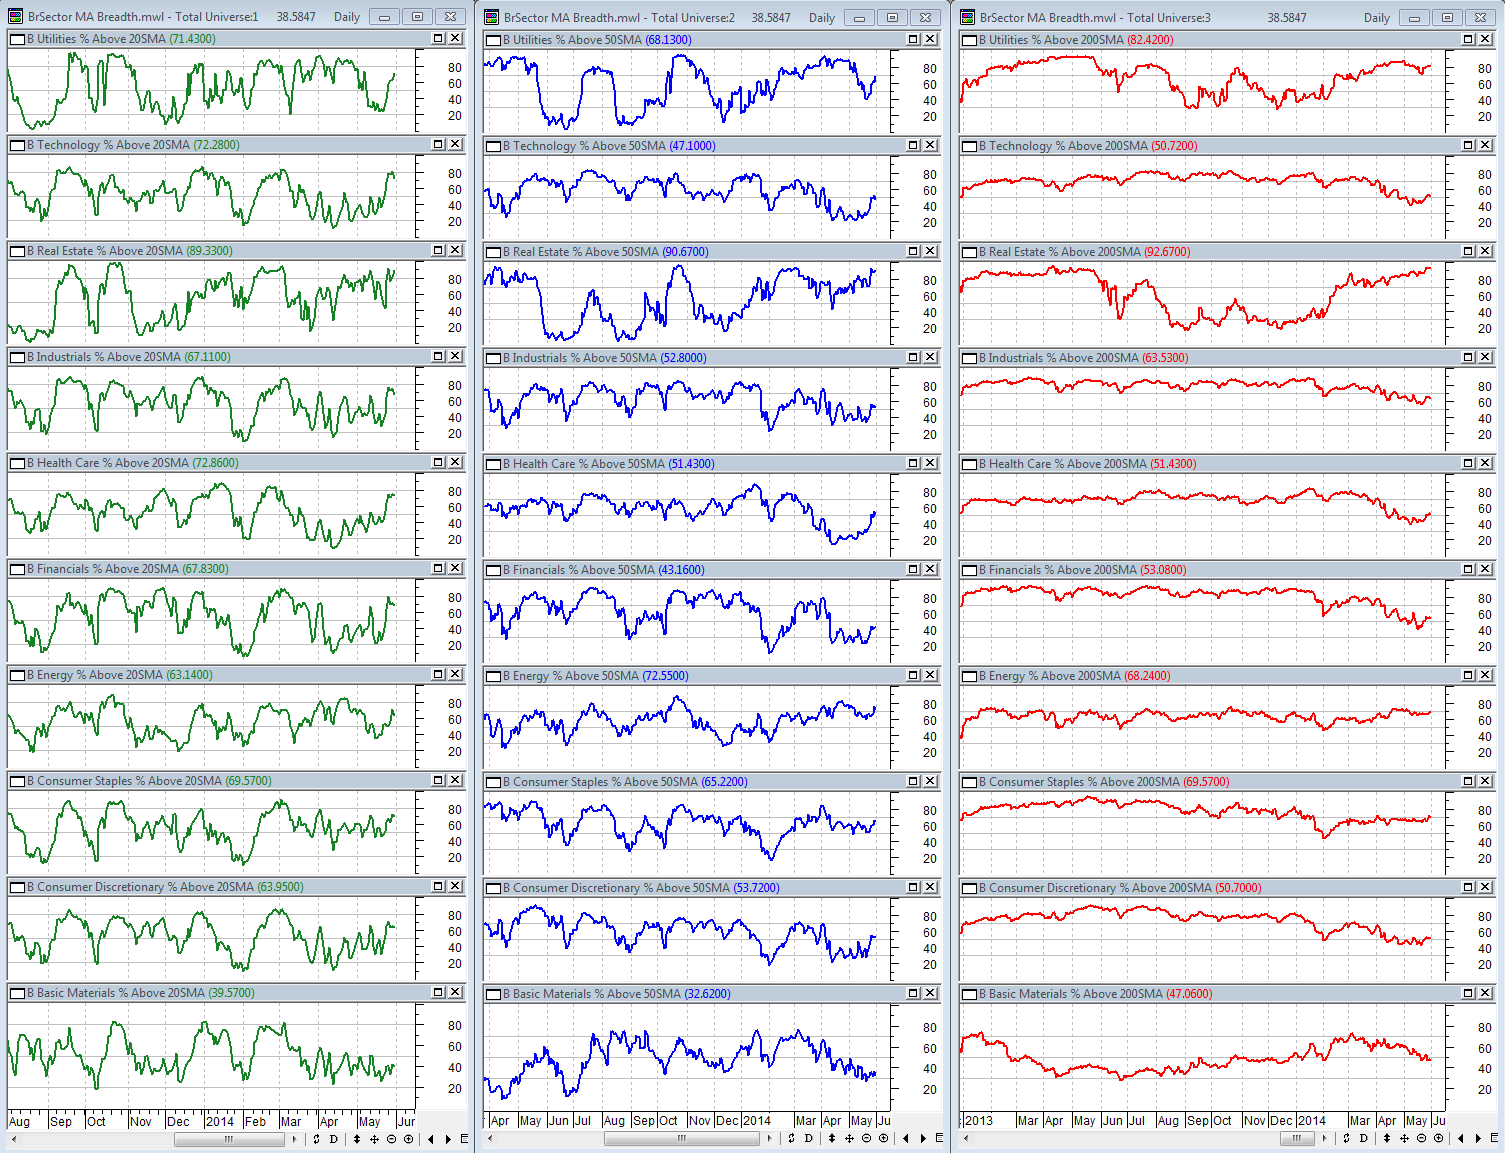 5-30-2014 BSec MA Breadth Dashboard